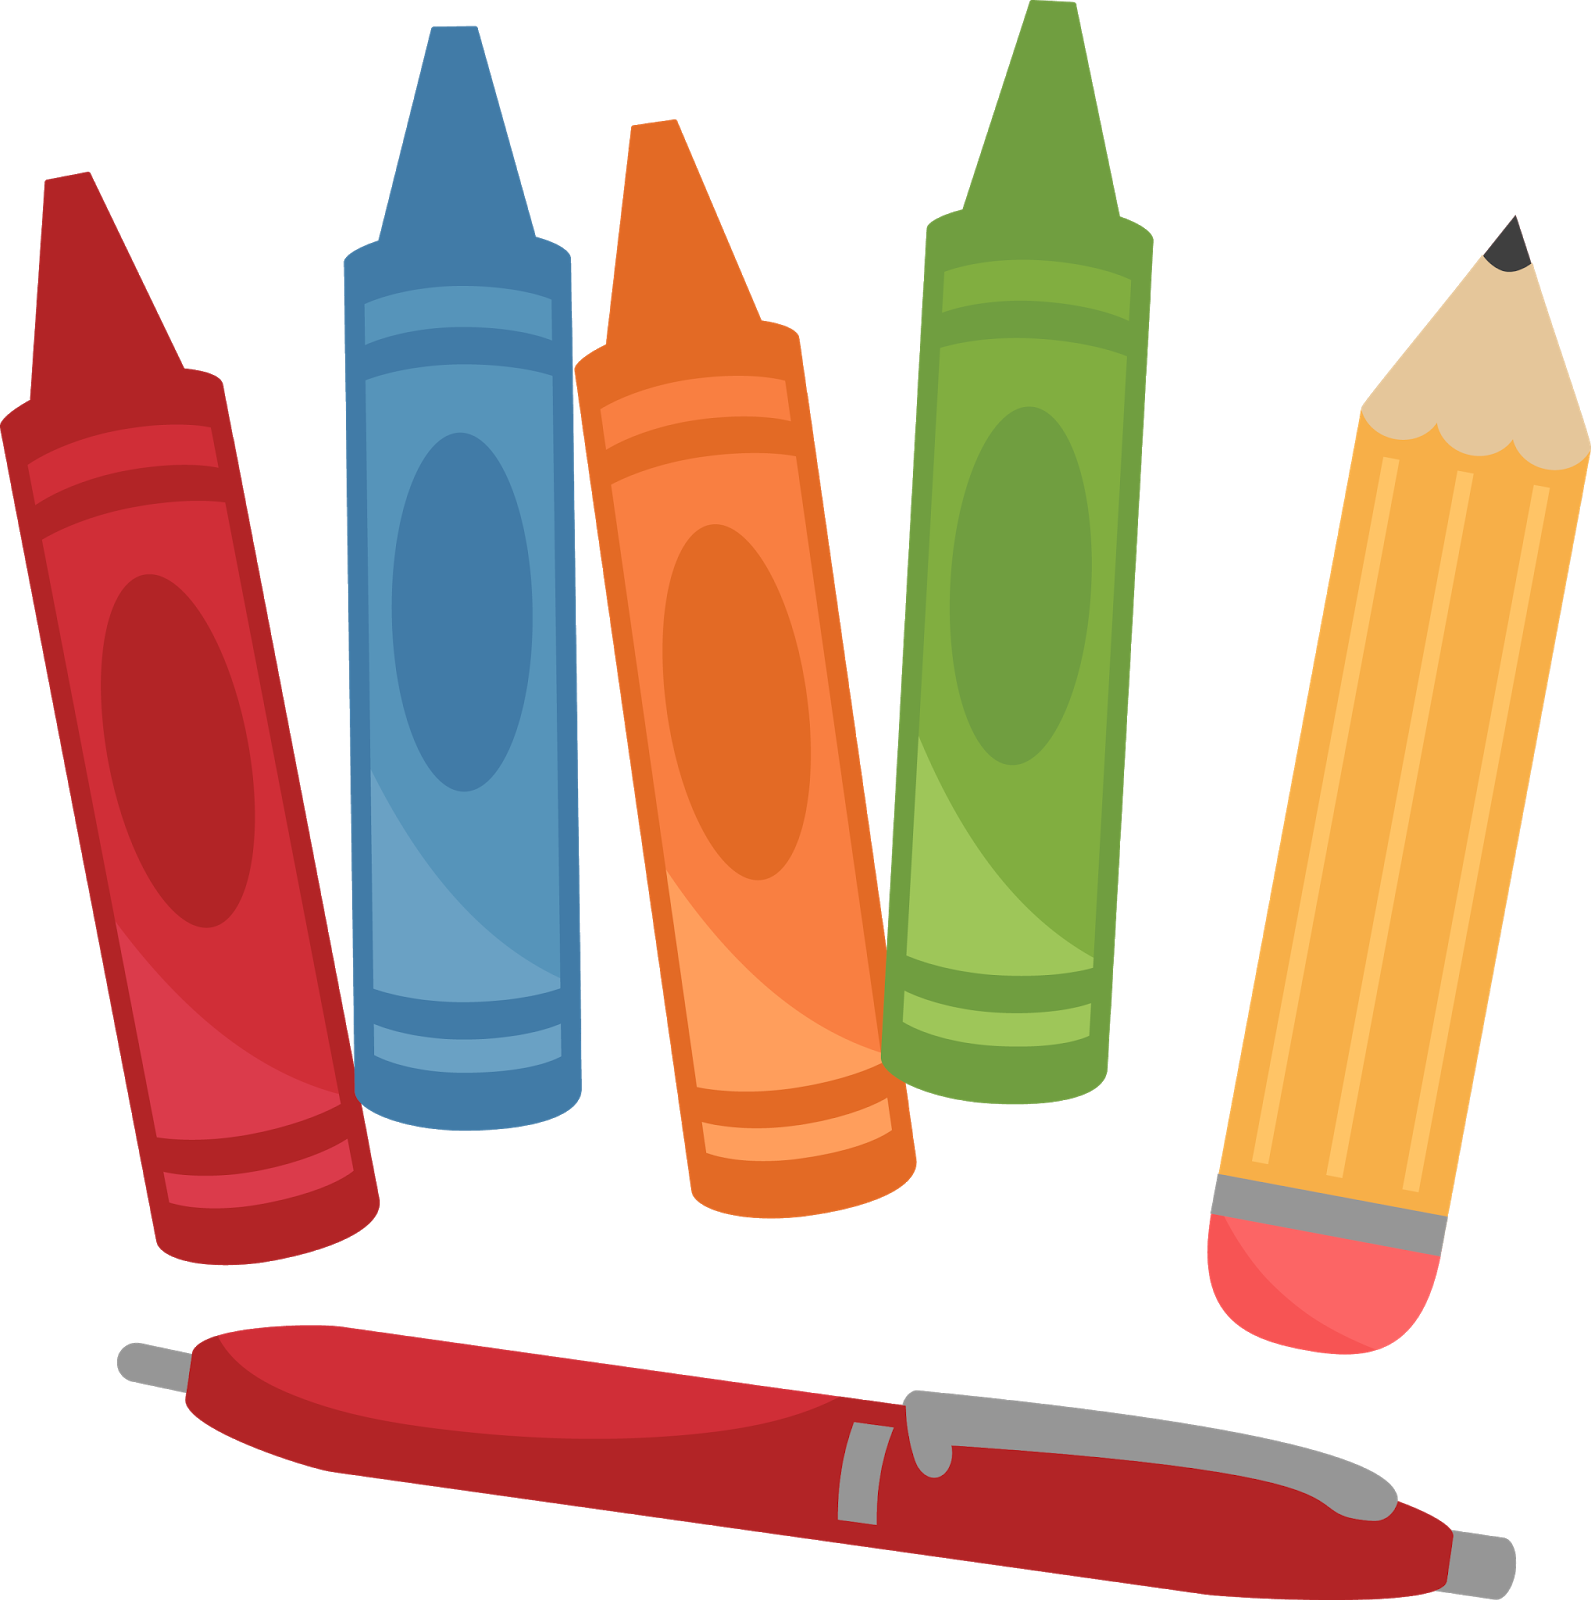 Crayon clipart school item. Miss kate cuttables designer